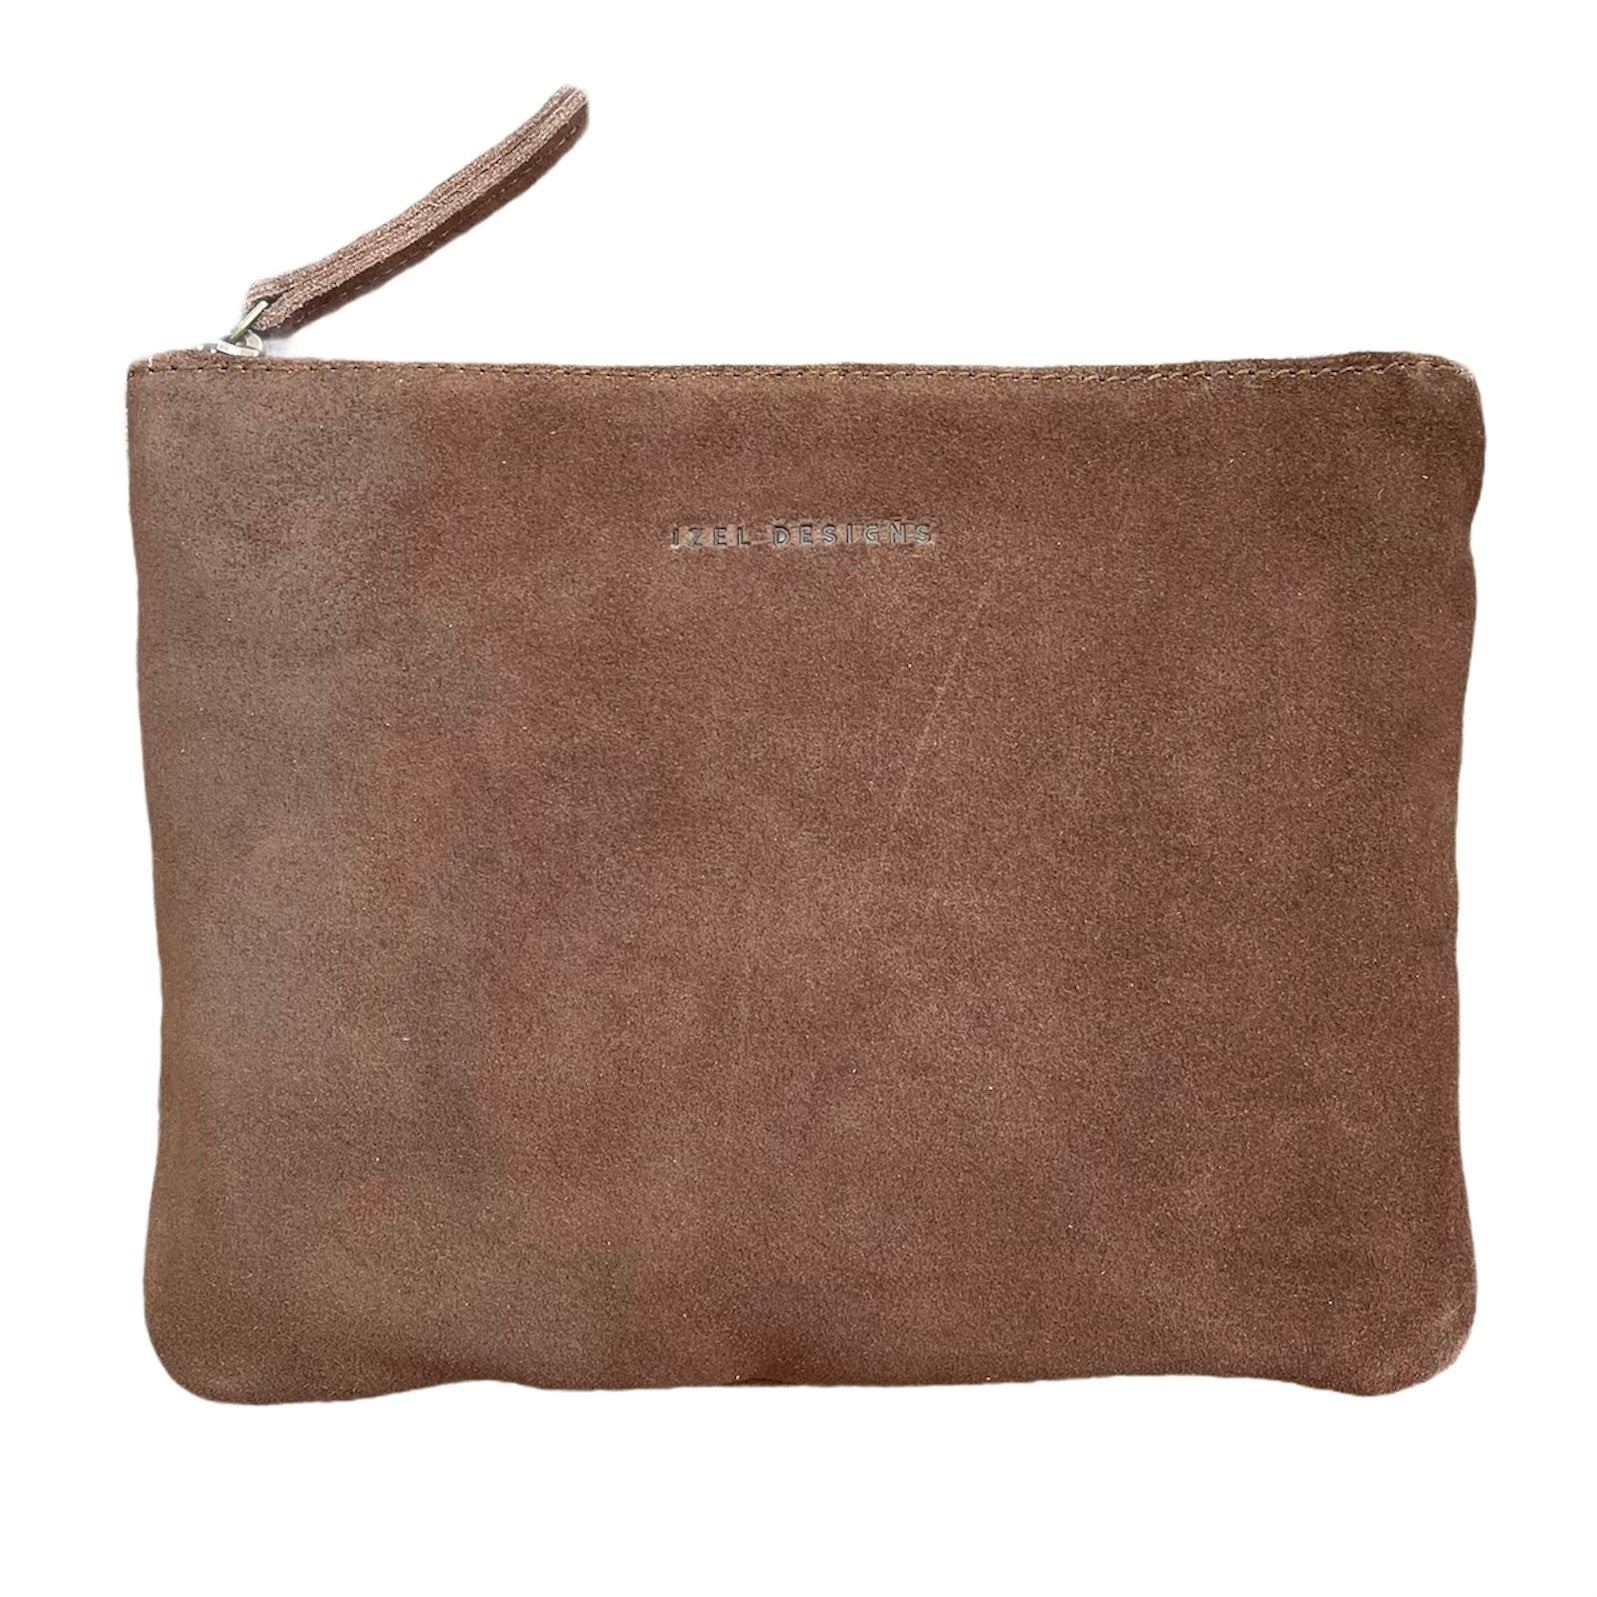 SUEDE LEATHER CLUTCH - BROWN. Izel Designs